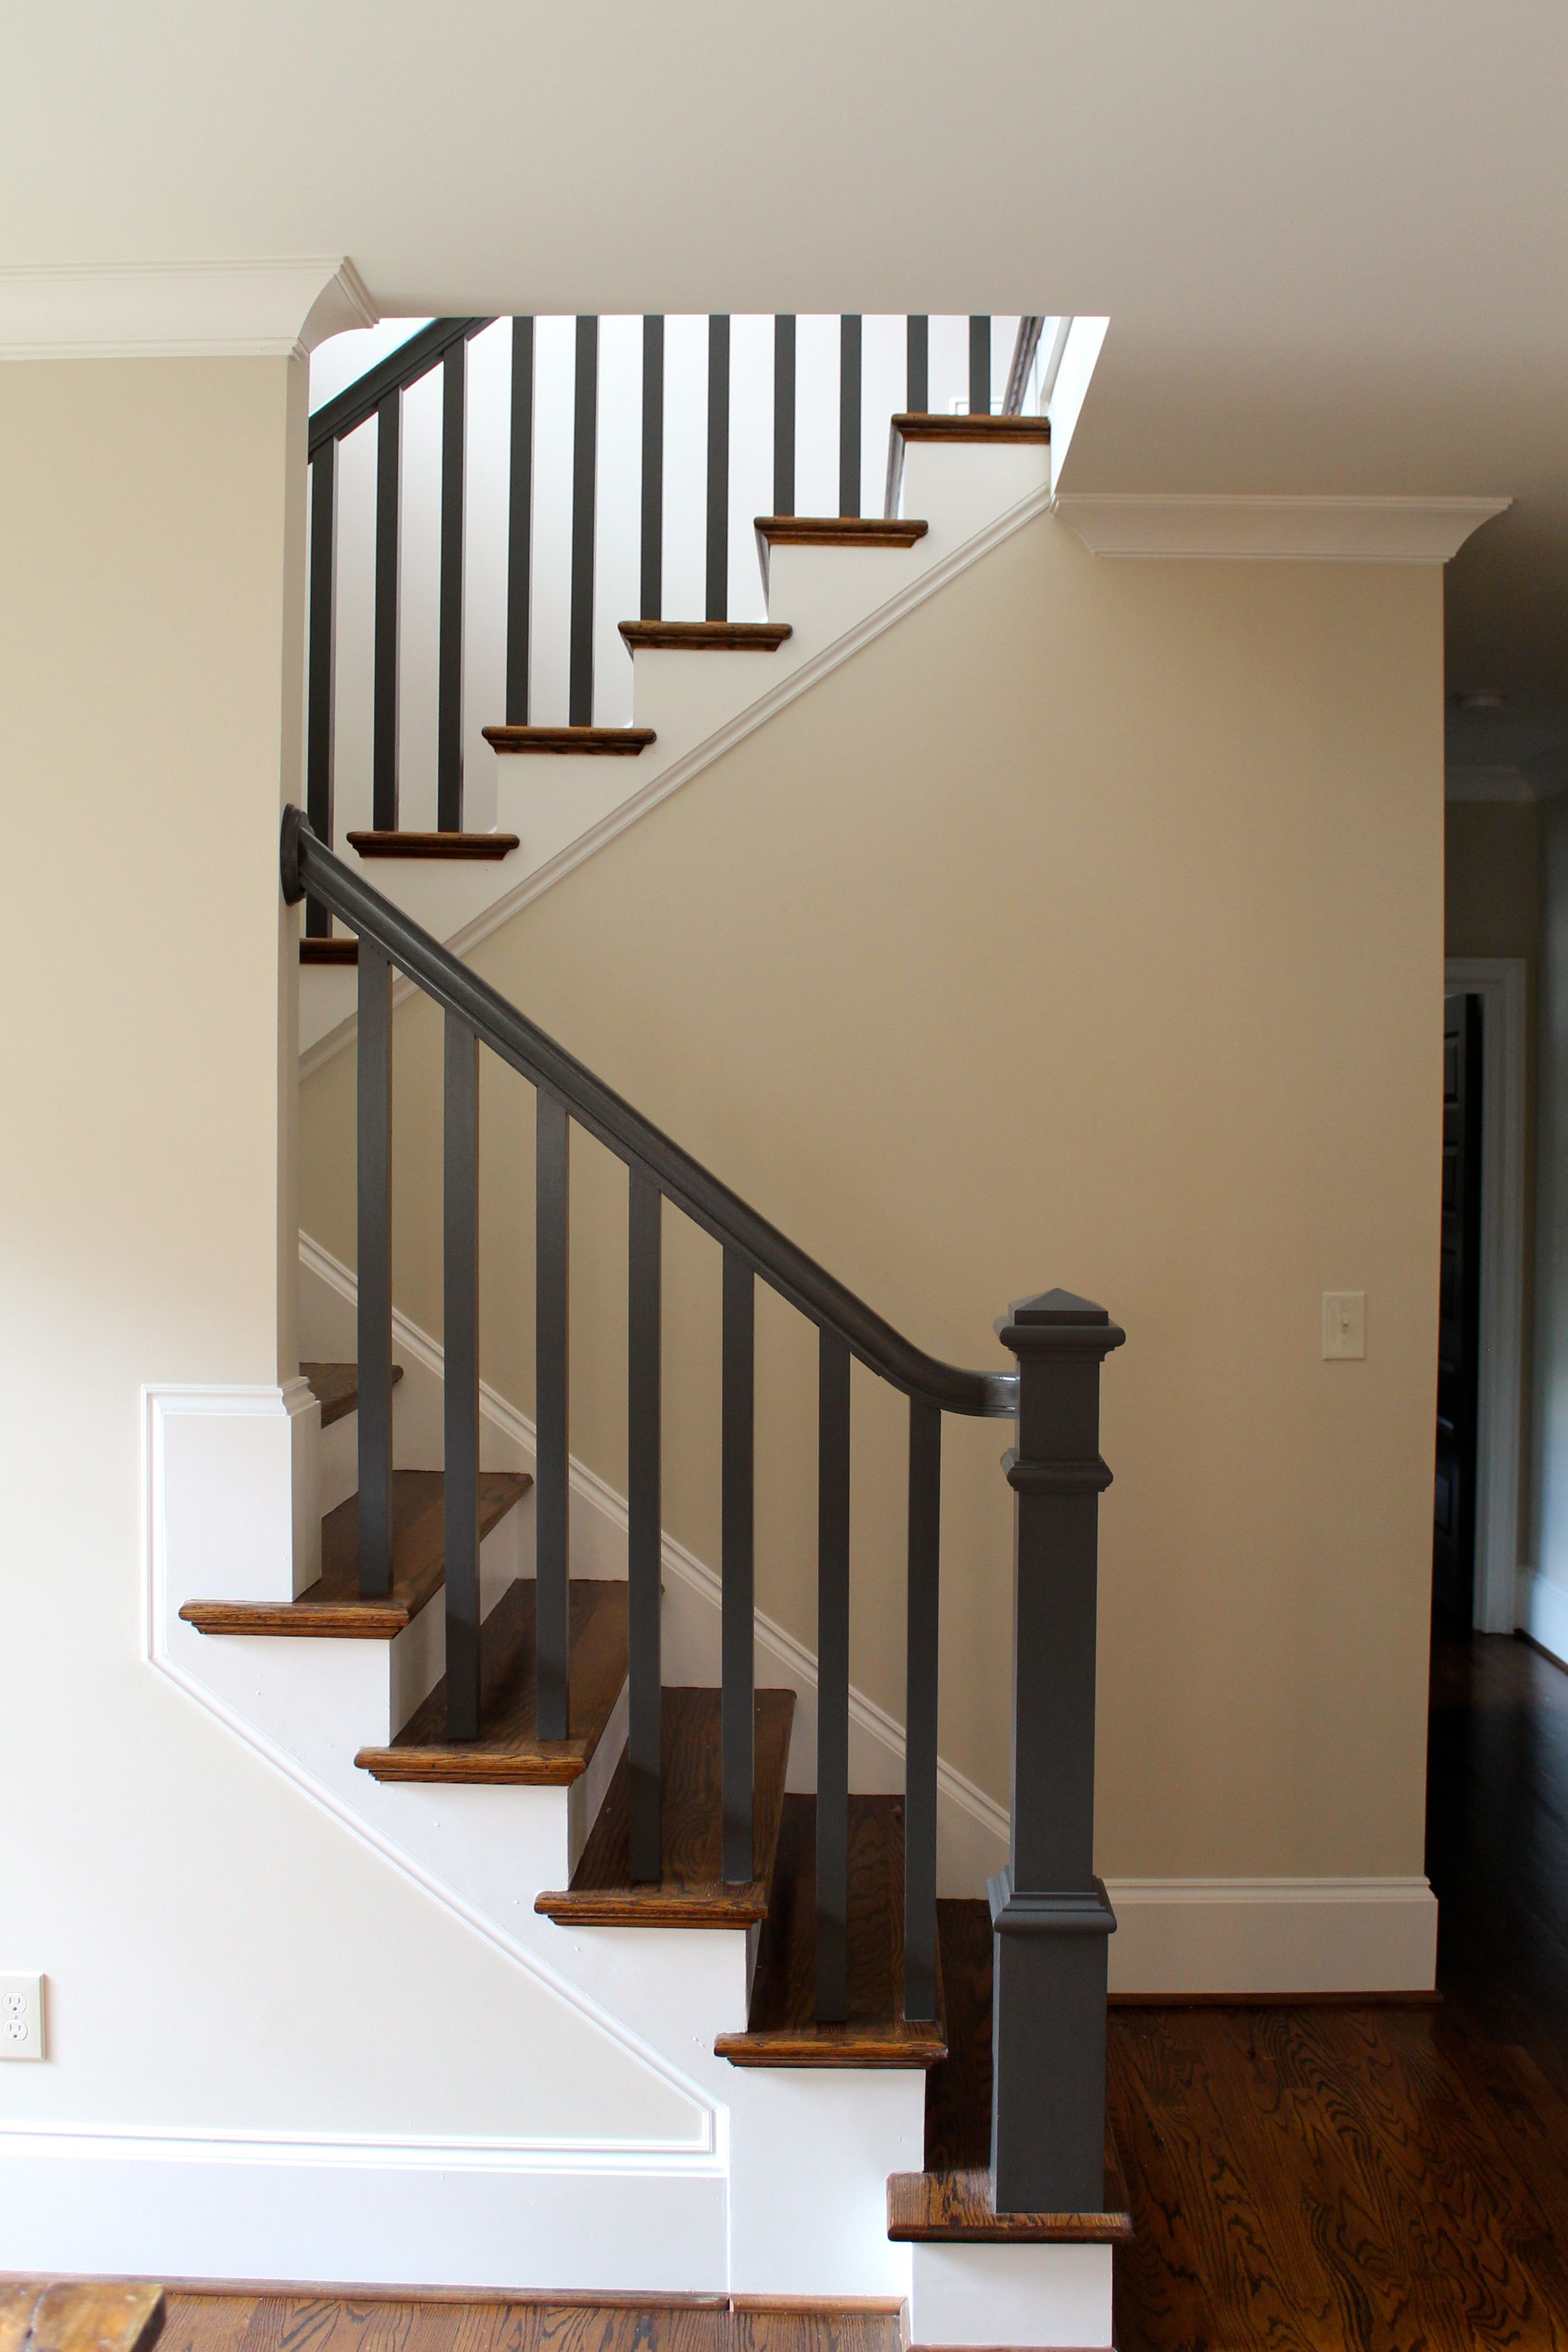 Pin By Stephanie Seidel On Kevin Carpenter Interiors Interior | Black Banister White Spindles | Black Railing | Wainscoting | White Painted Riser | Benjamin Moore Stair Railing | Baluster Curved Stylish Overview Stair